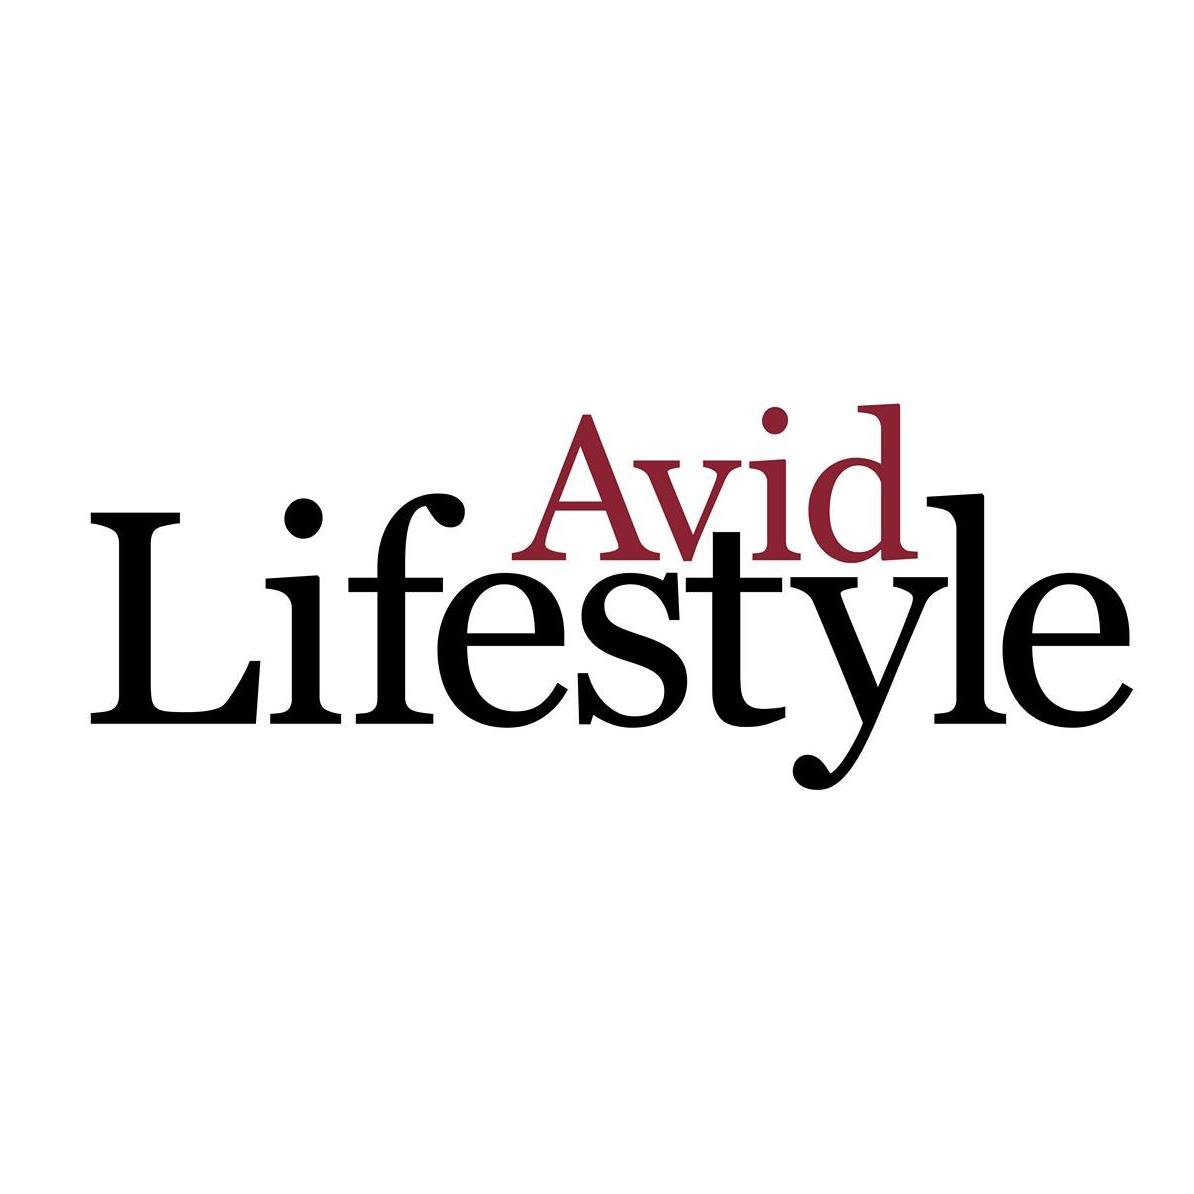 Gala Style Tips From Avid Lifestyle Magazine